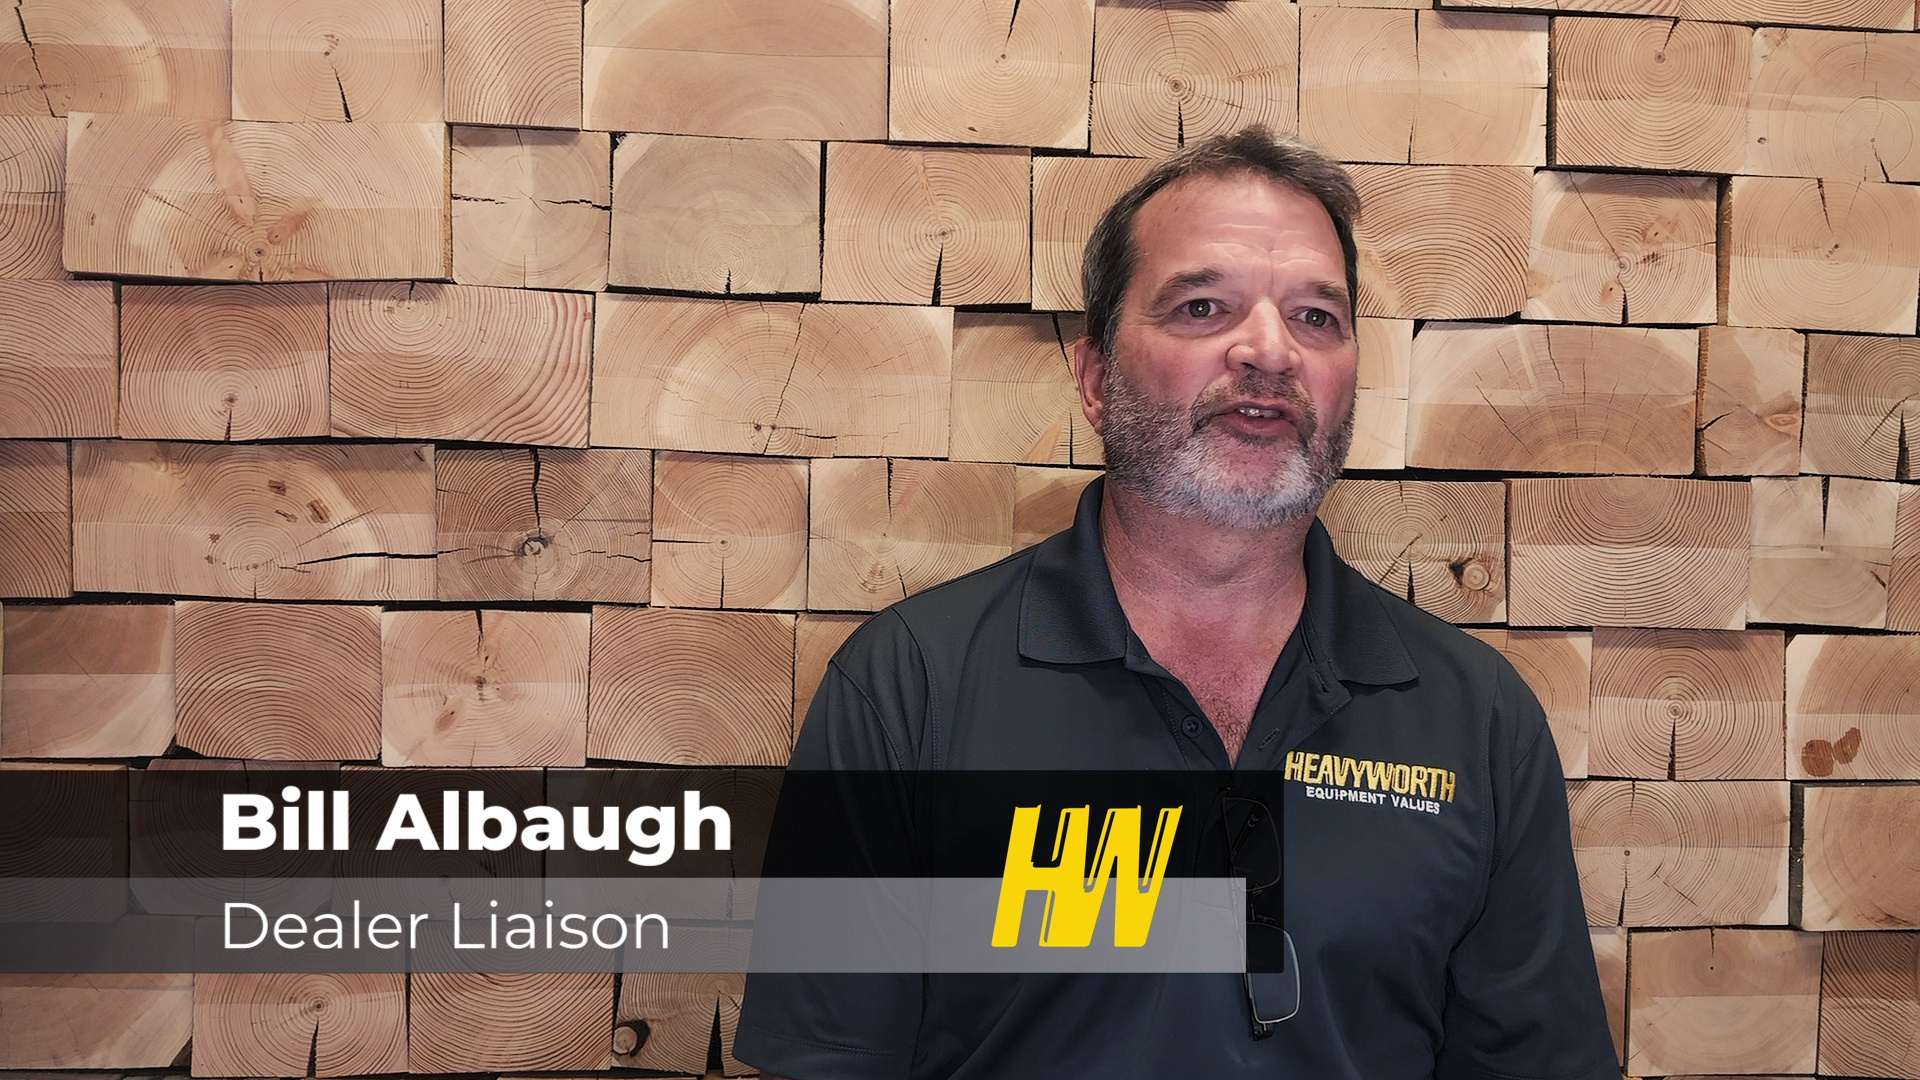 Bill Albaugh explains how to perform accurate evaluations on nearly-new assets.